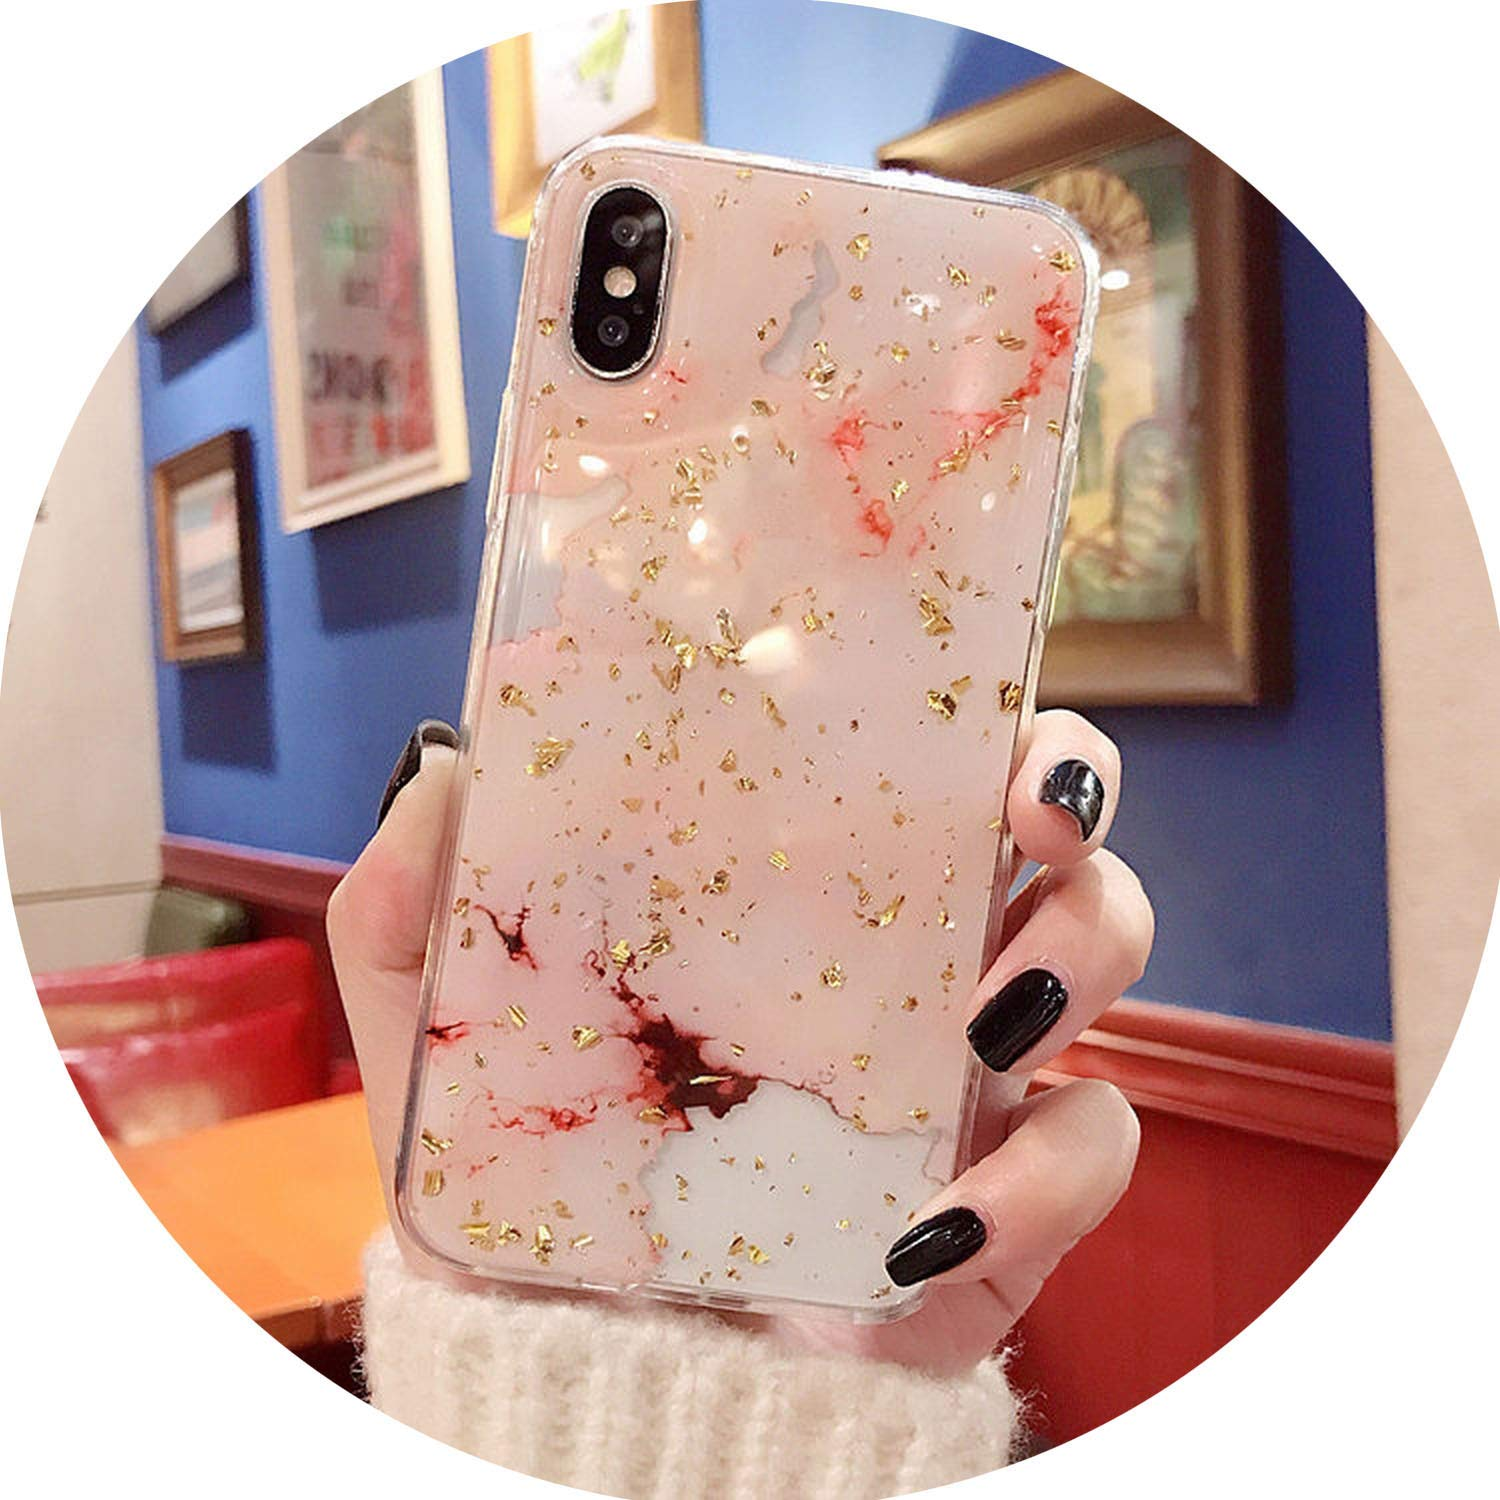 Bling Gold Foil Marble Phone Case for iPhone X XS Max XR Cover Hole Soft TPU Cases for iPhone 7 8 6 6s Plus Glitter Capa,Pink,for XS Max (6.5inch)